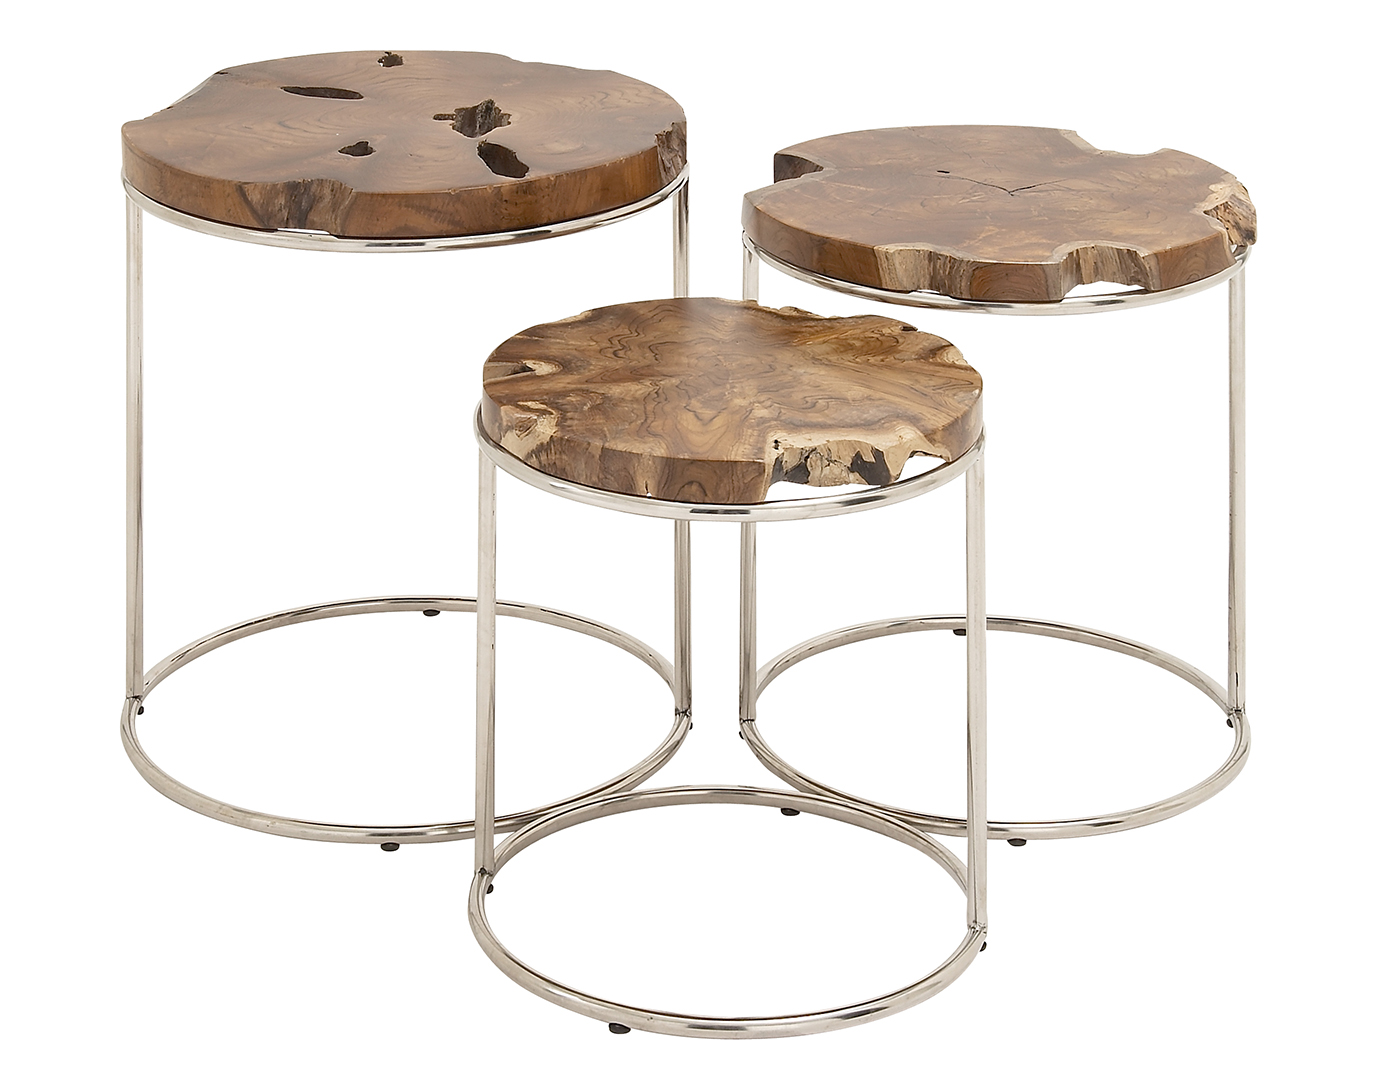 Teak and Metal Round Table Set